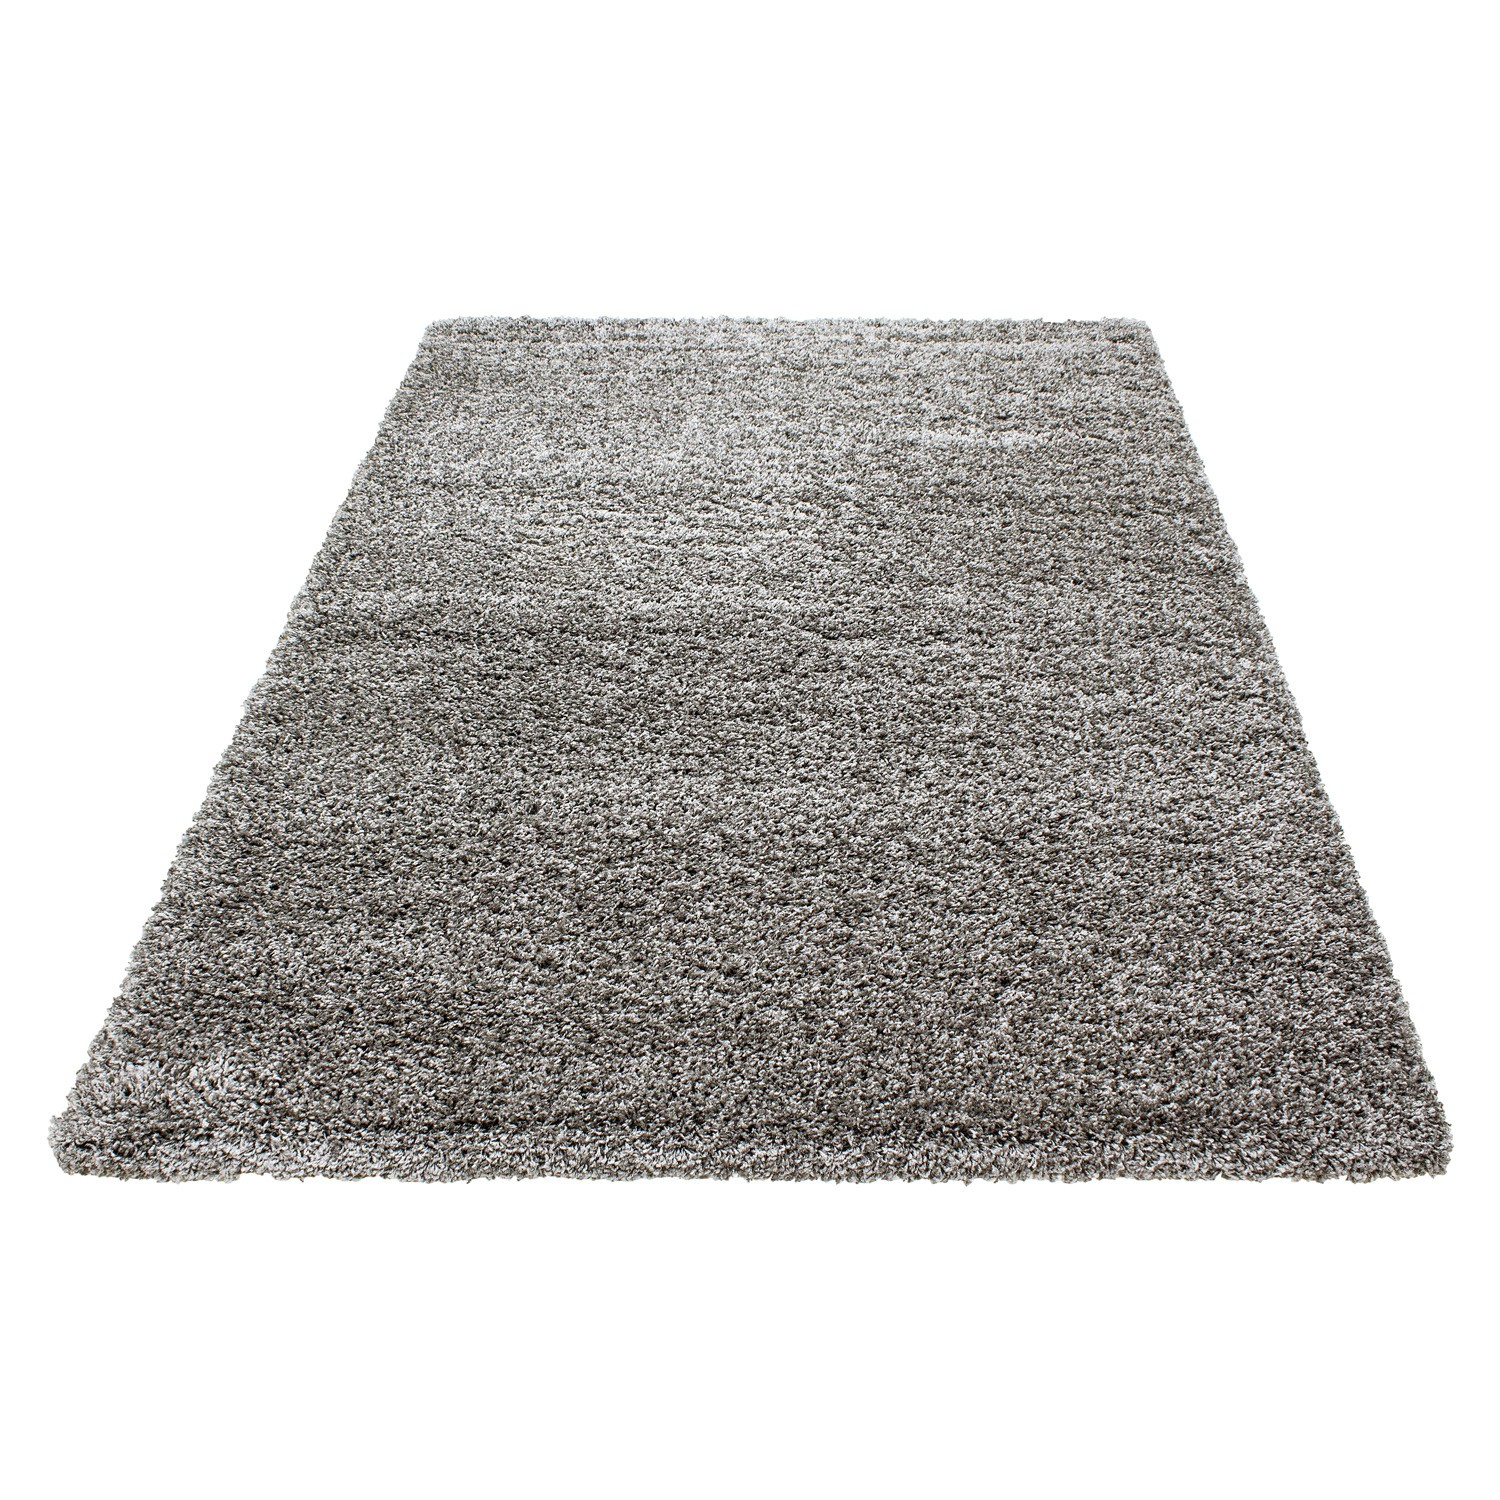 tapis shaggy taupe pas cher tapis shaggy rond grand tapis shaggy tapis shaggy - Grand Tapis